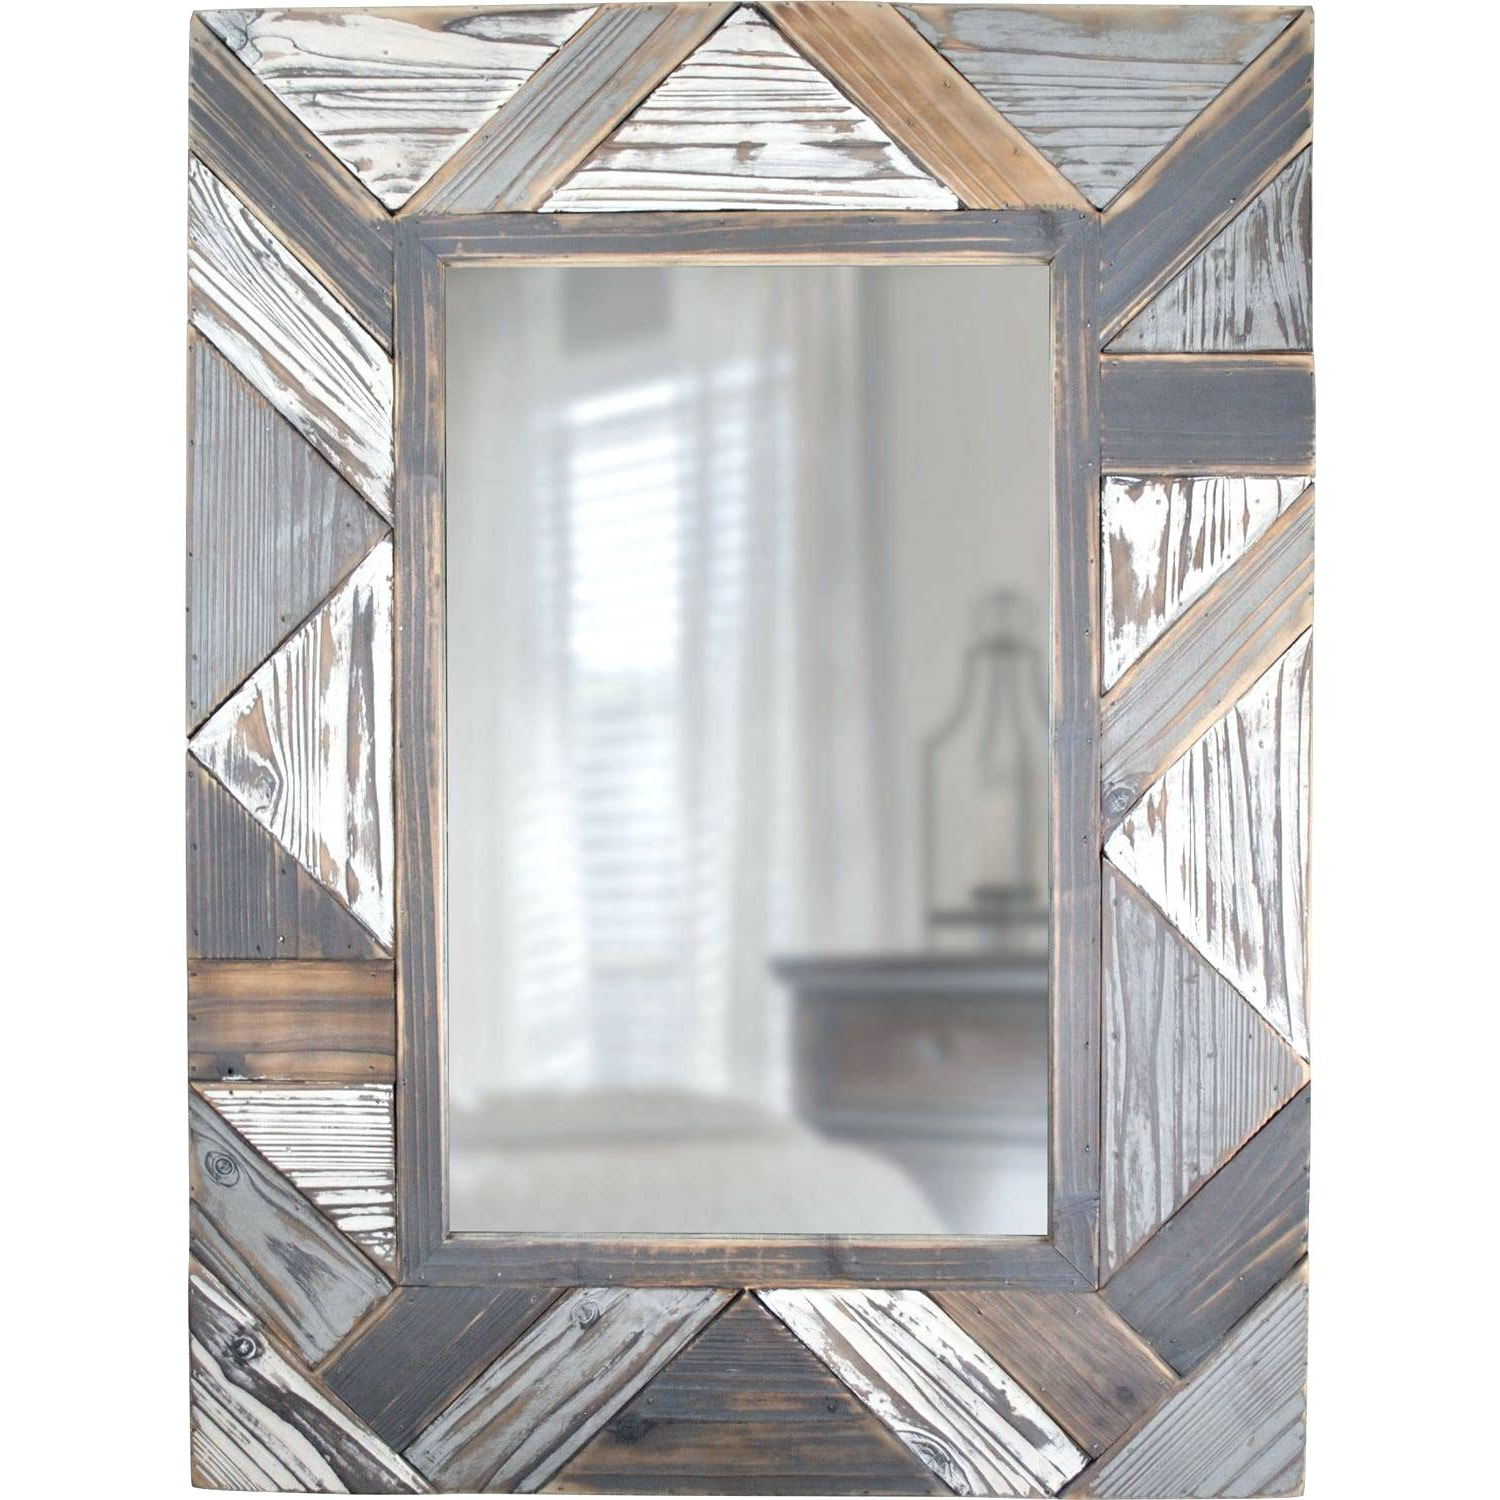 2019 Booth Reclaimed Wall Mirrors Accent Inside Gray Wood Wall Mirror – Fefisbaby (View 20 of 20)